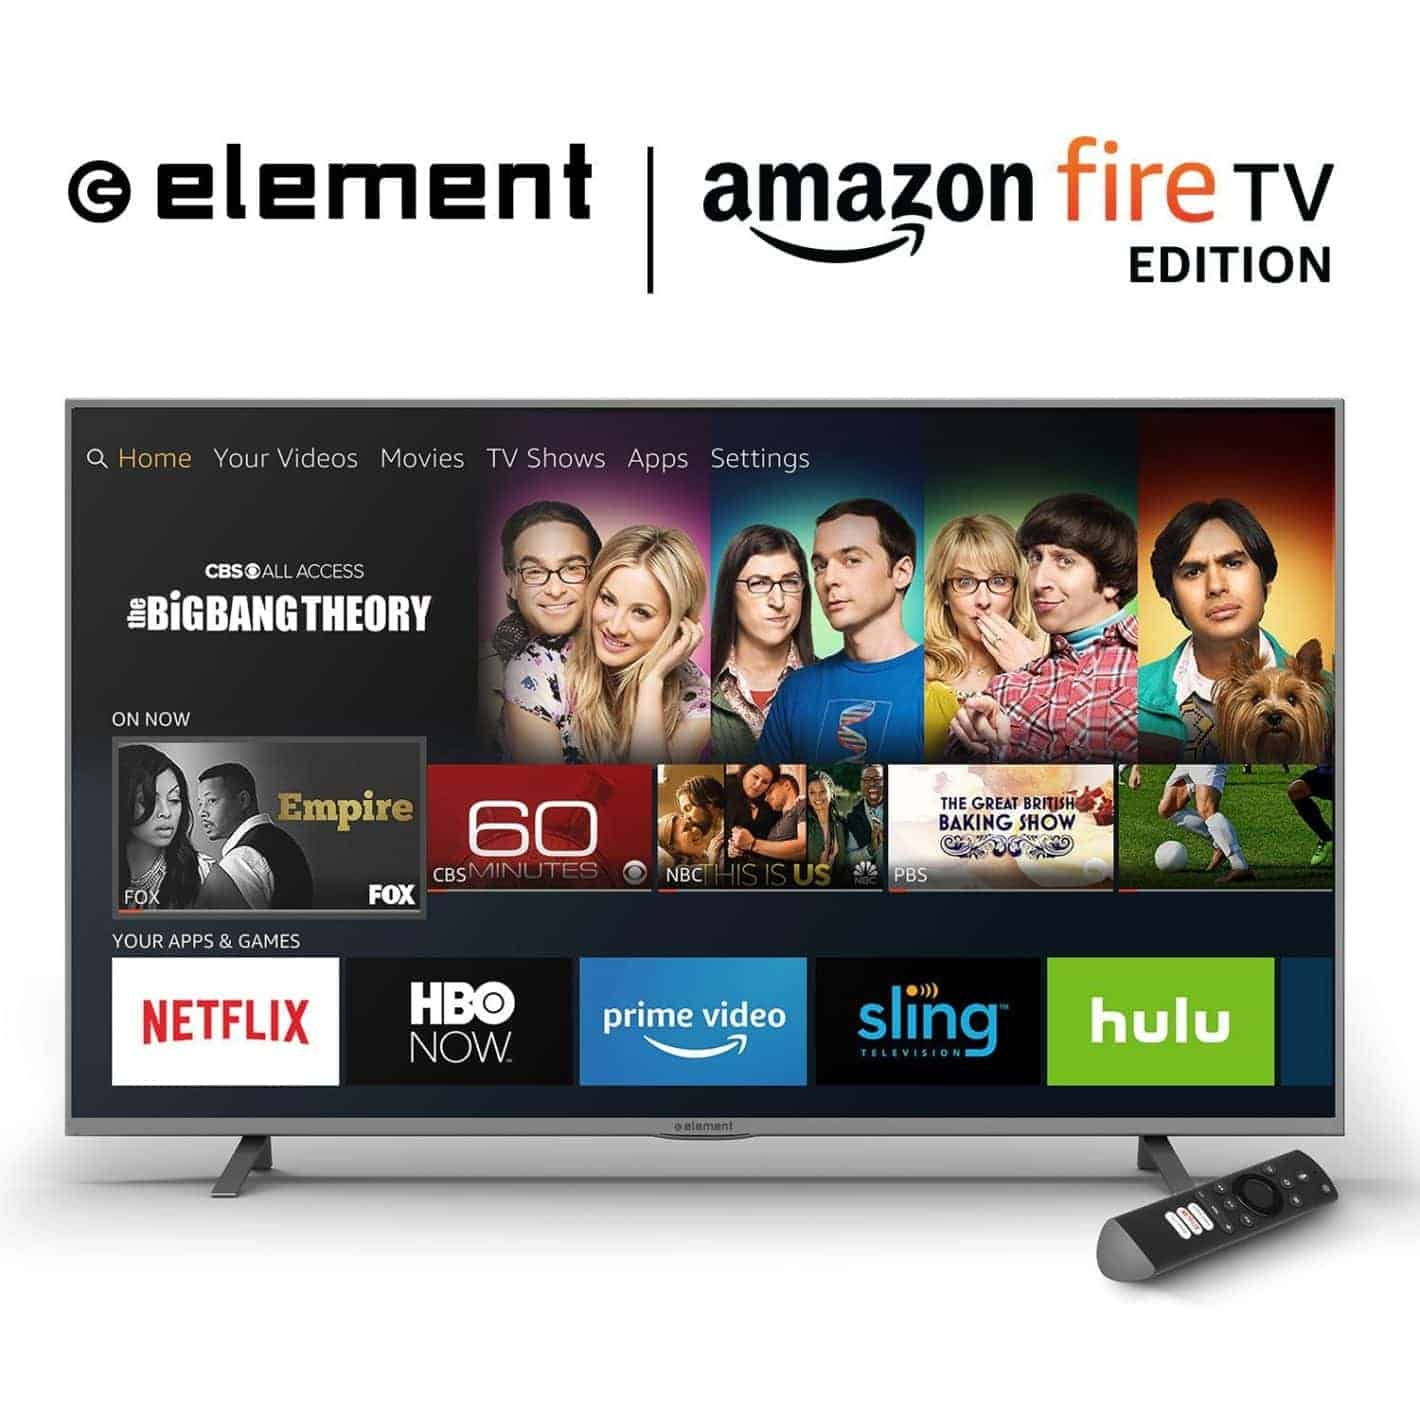 Westinghouse Element Amazon Fire TV Edition 1